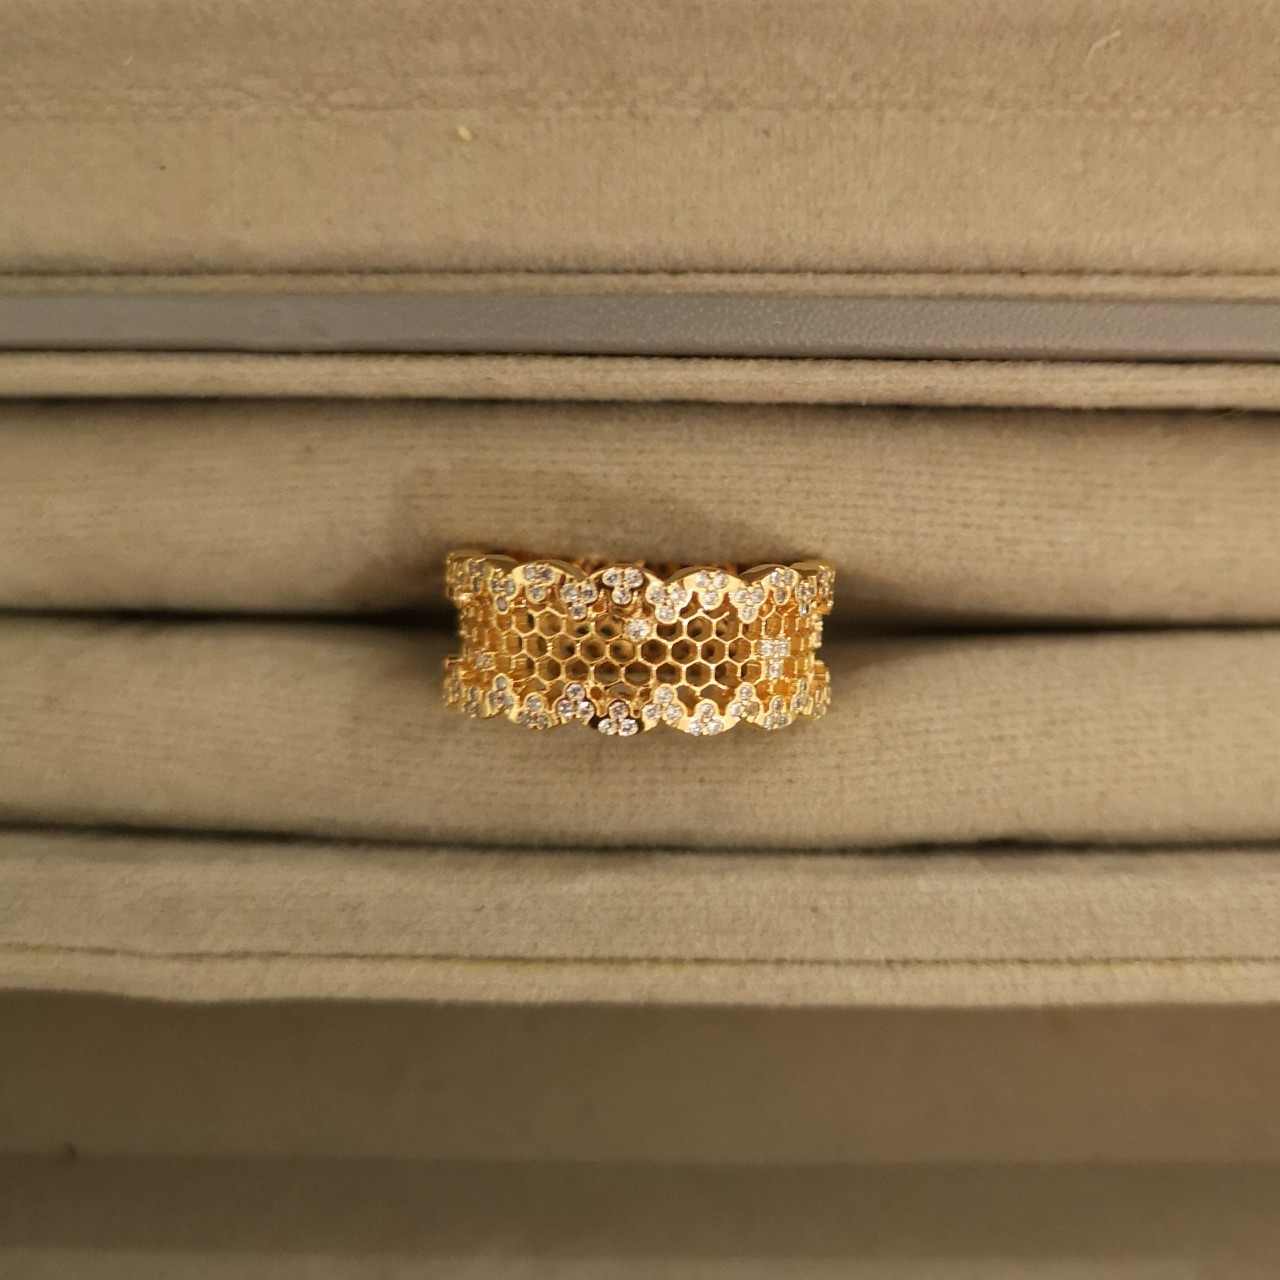 Pandora Honeycomb Lace Ring – Size 54 Never Worn, – Depop With Current Honeycomb Lace Rings (View 7 of 25)